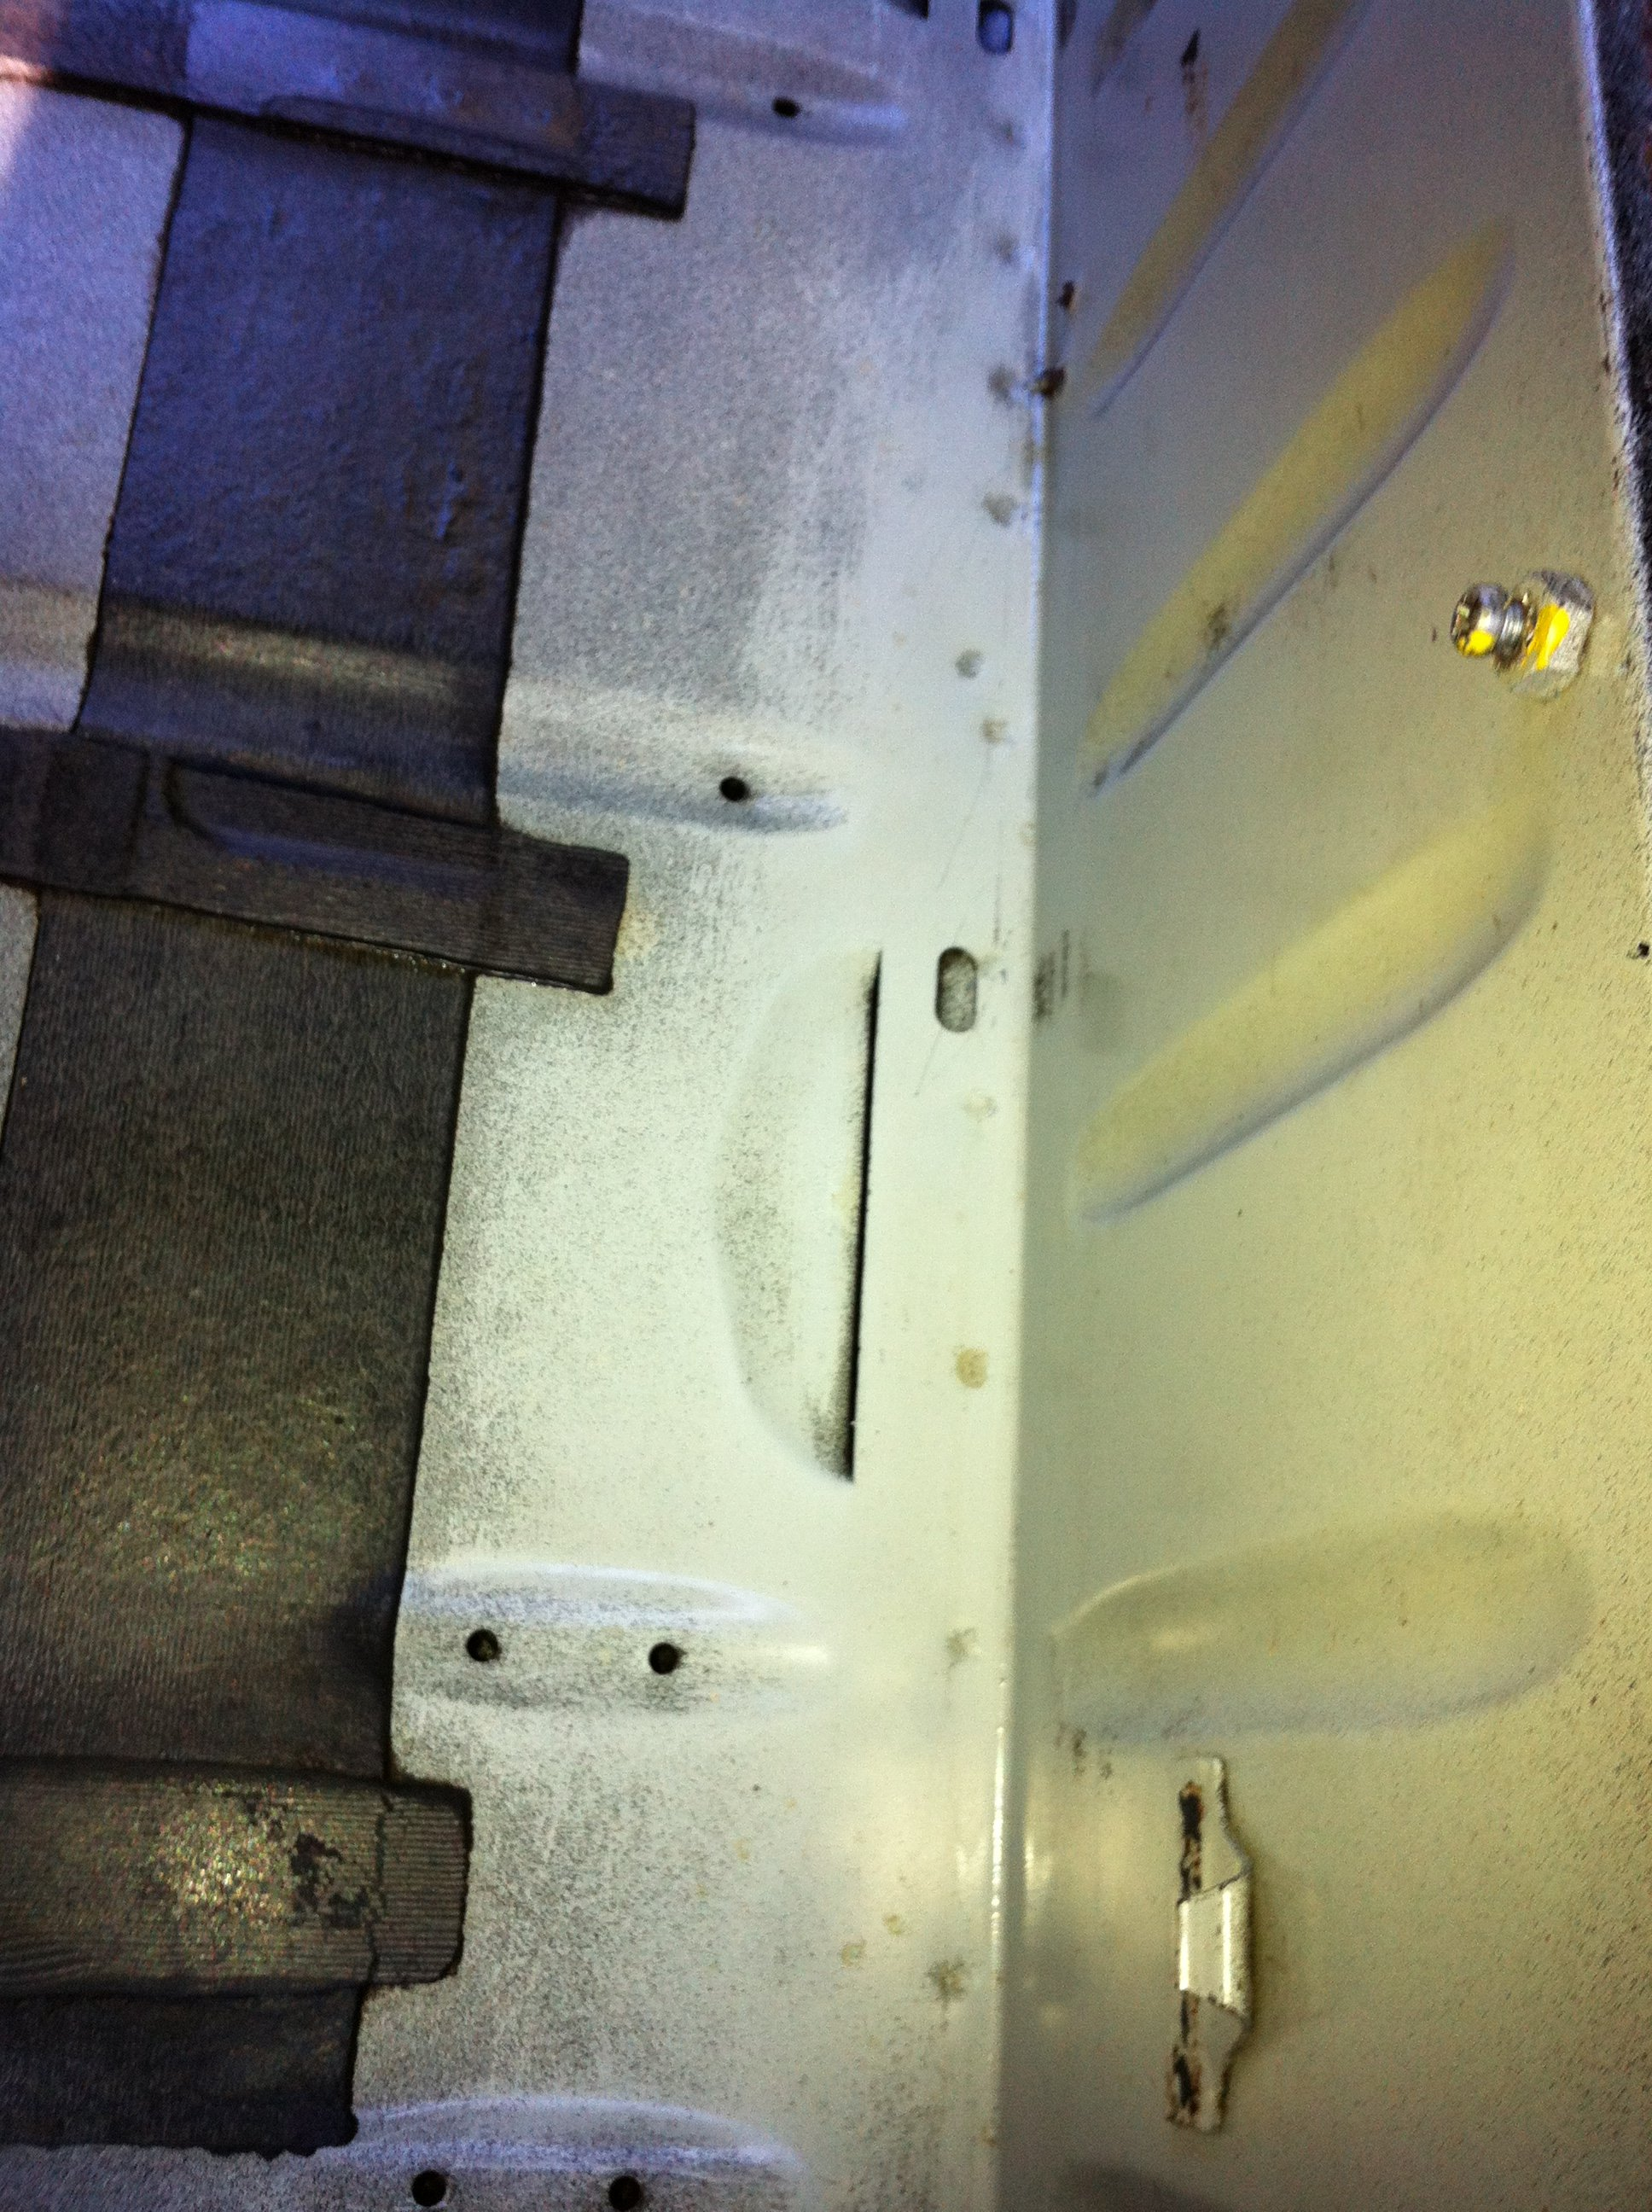 The fuel tank bay is clean and rust-free. This car is in excellent structural condition.